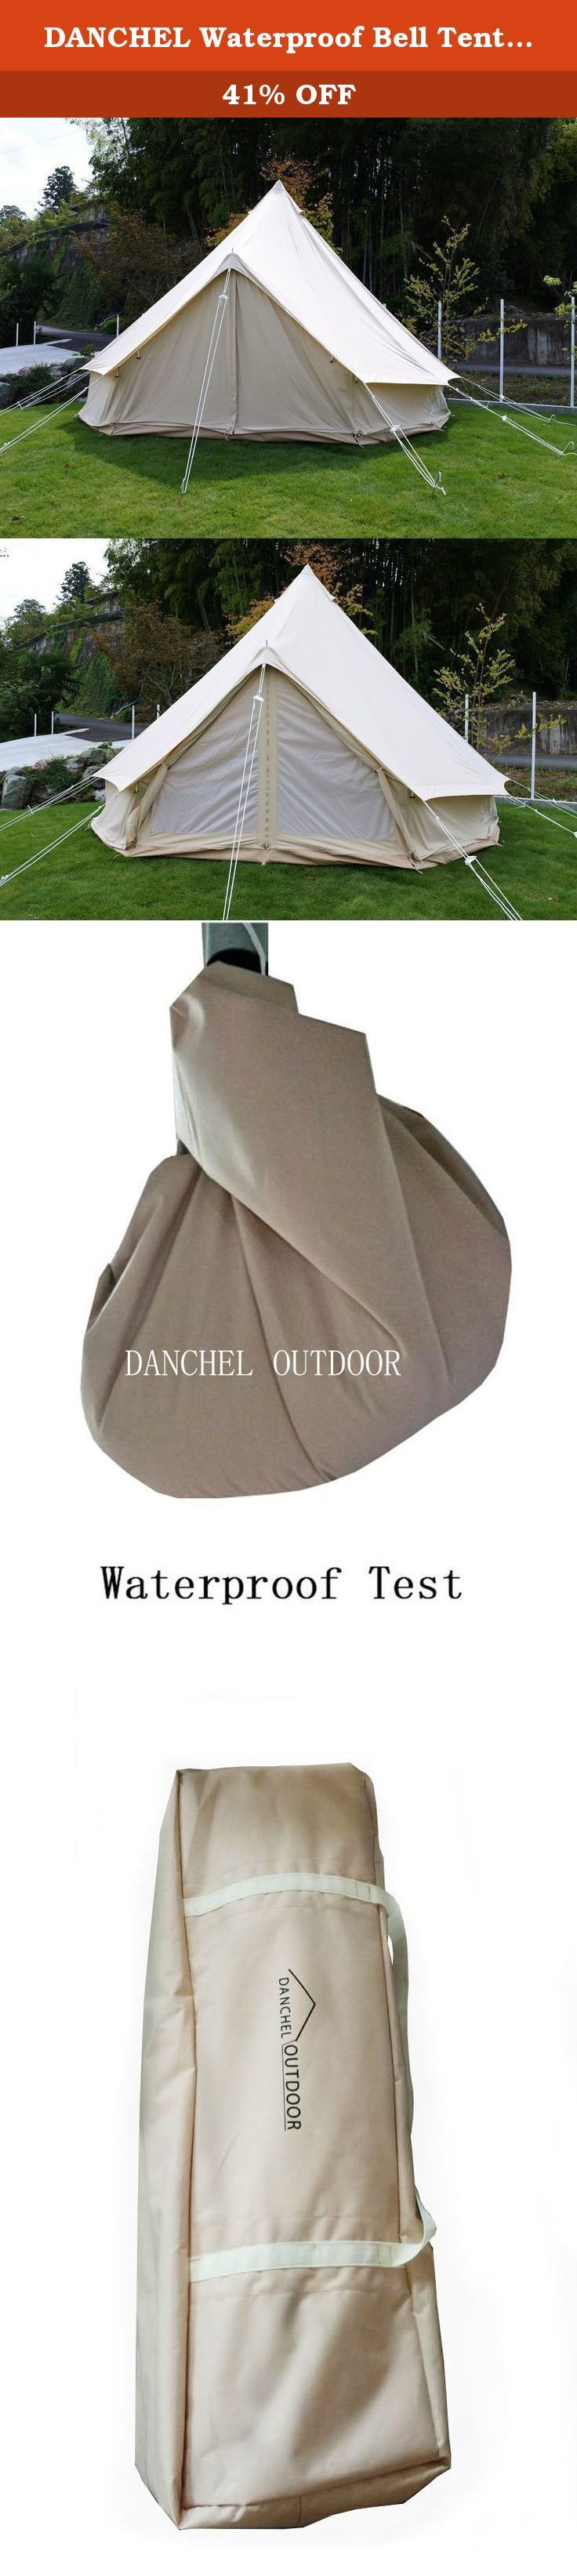 DANCHEL Waterproof Bell Tent 900D Oxford Fabric 3000mm for 4 Persons, Size 4M / 13.1 Feet. Feature of bell tent MATERIAL : 900D OXFORD fabric, 5000MM waterproof treatment on the surface, cream coloured; 540gsm thick PVC in bottom WINDOW and DOOR : comes with 4 zipped side windows and 4 air vents with mosquito netting on the window?for air flowing inside and outside. And come with one zipped door with mosquito netting too. WONDERFUL VIEW : It has full zip around the bottom and you can roll...